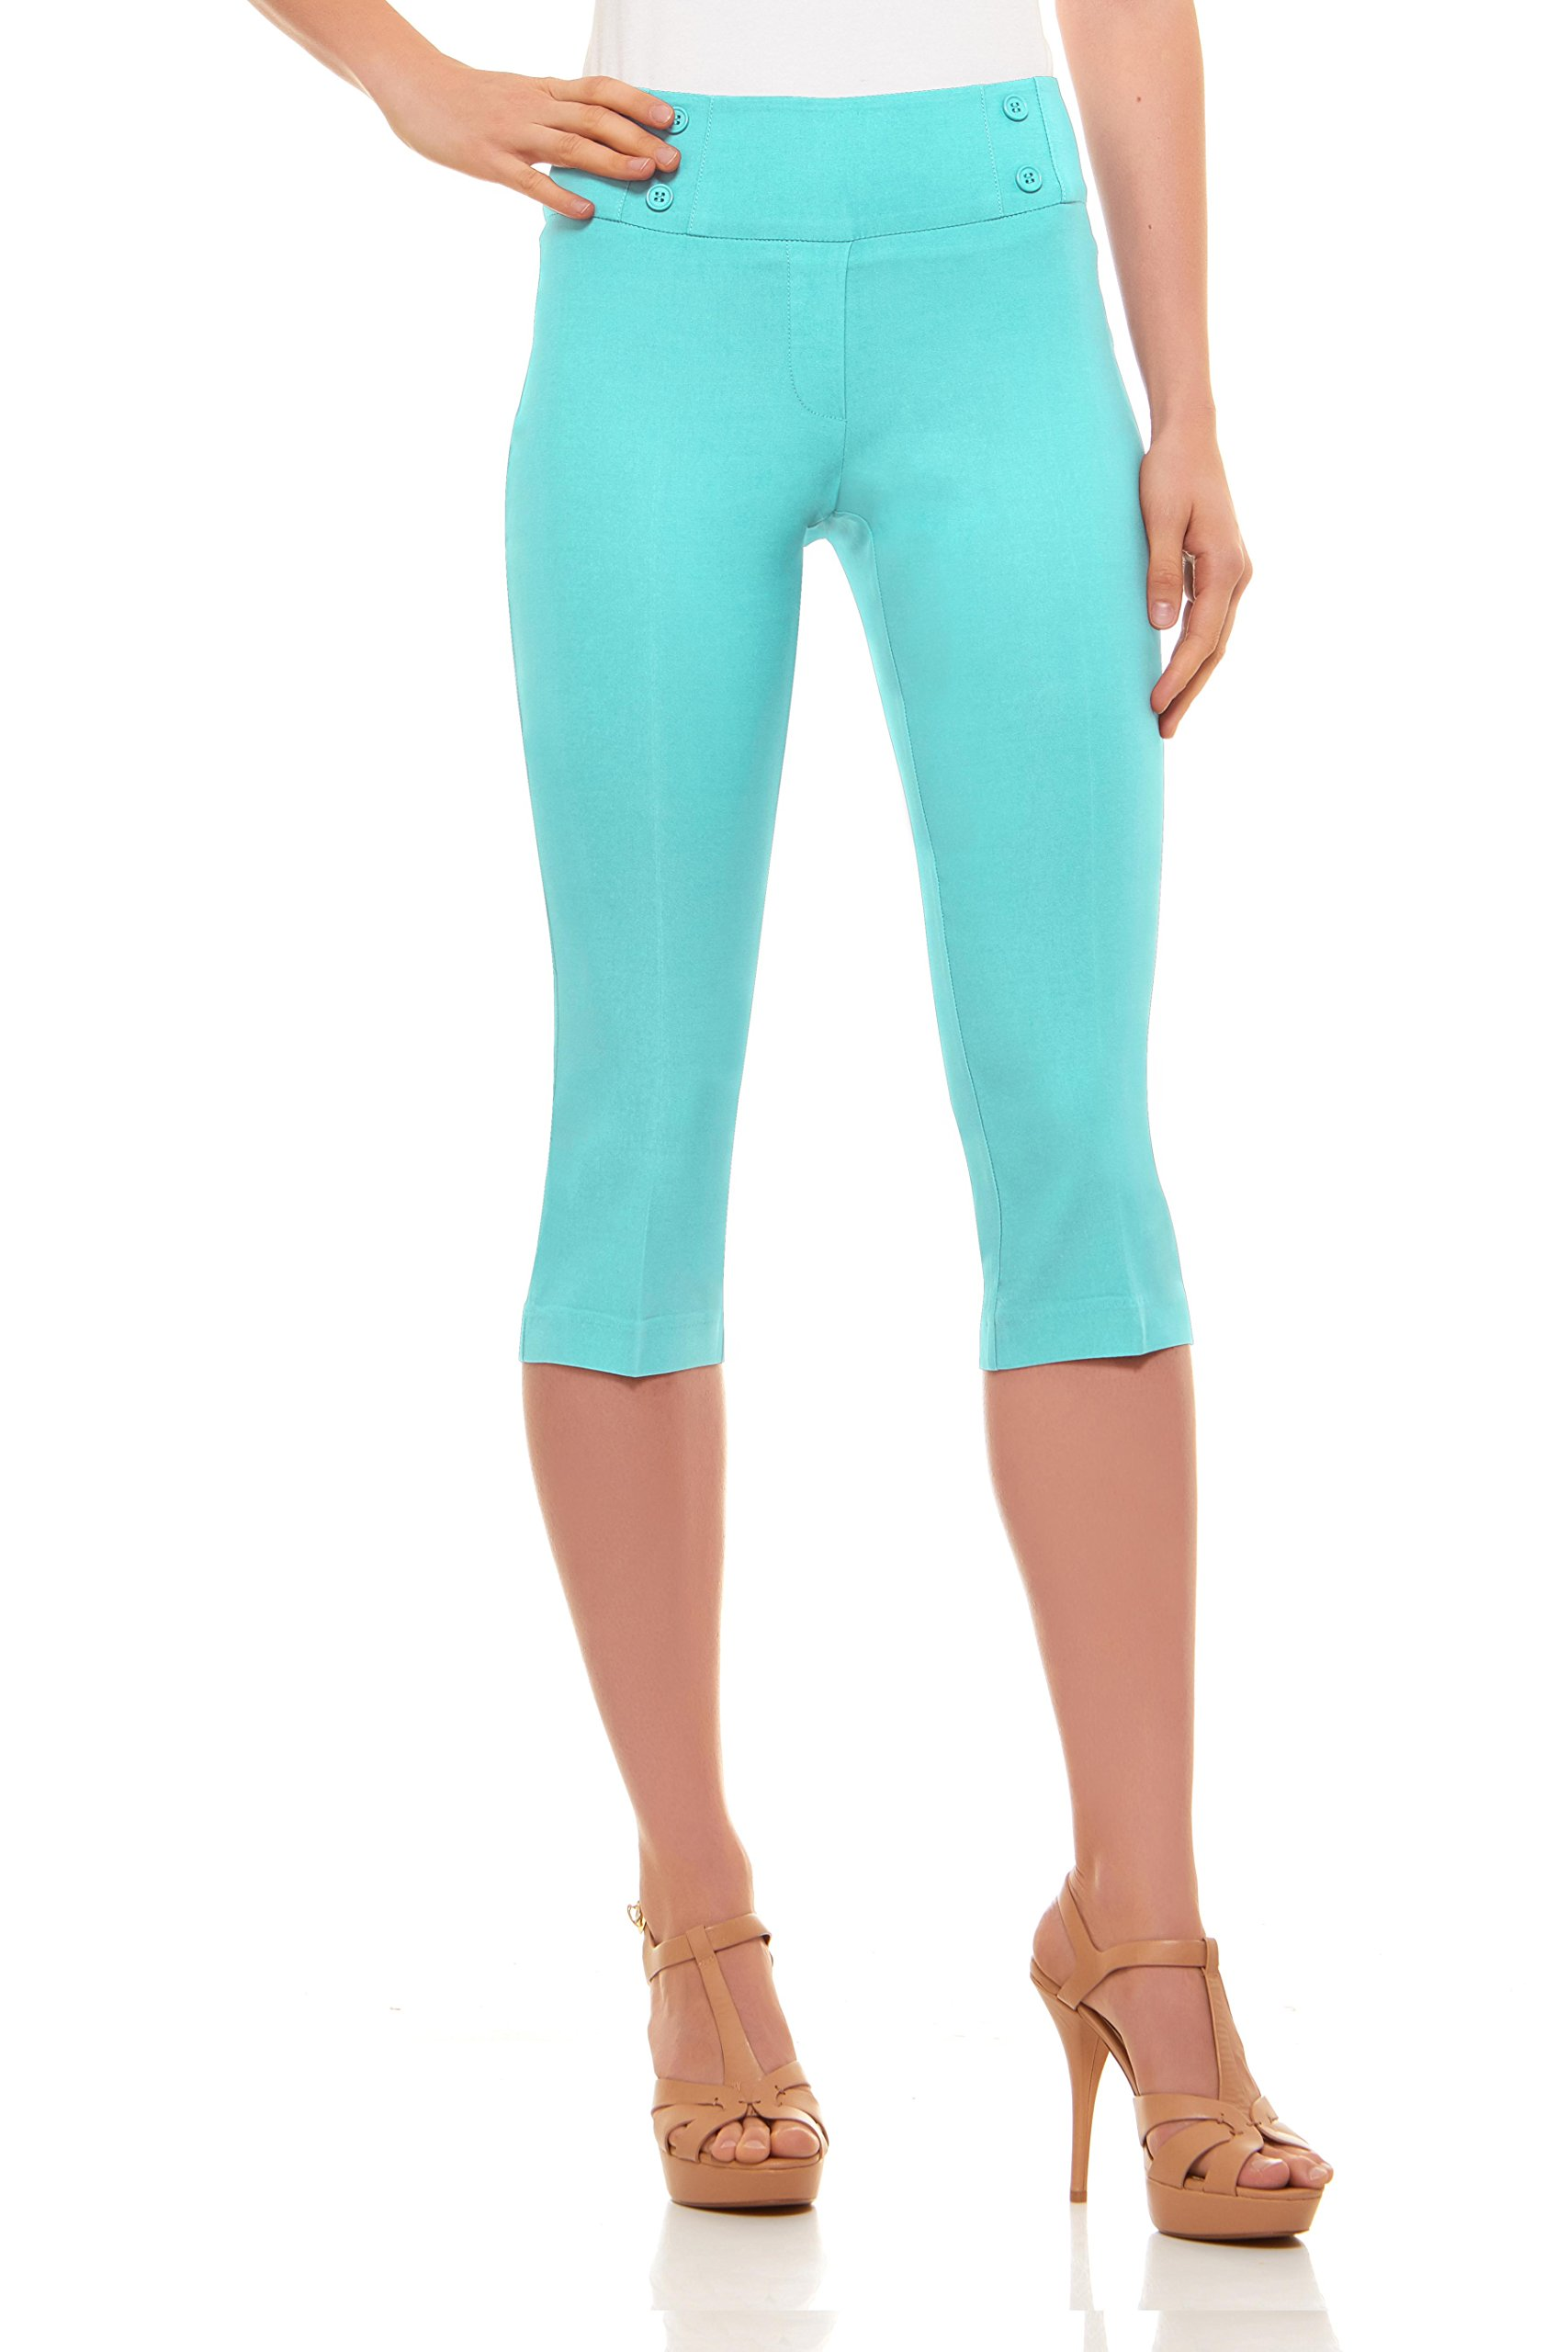 Velucci Womens Classic Fit Capri Pants - Comfortable Pull On Style With Detailed Design, Seafoam Green-M